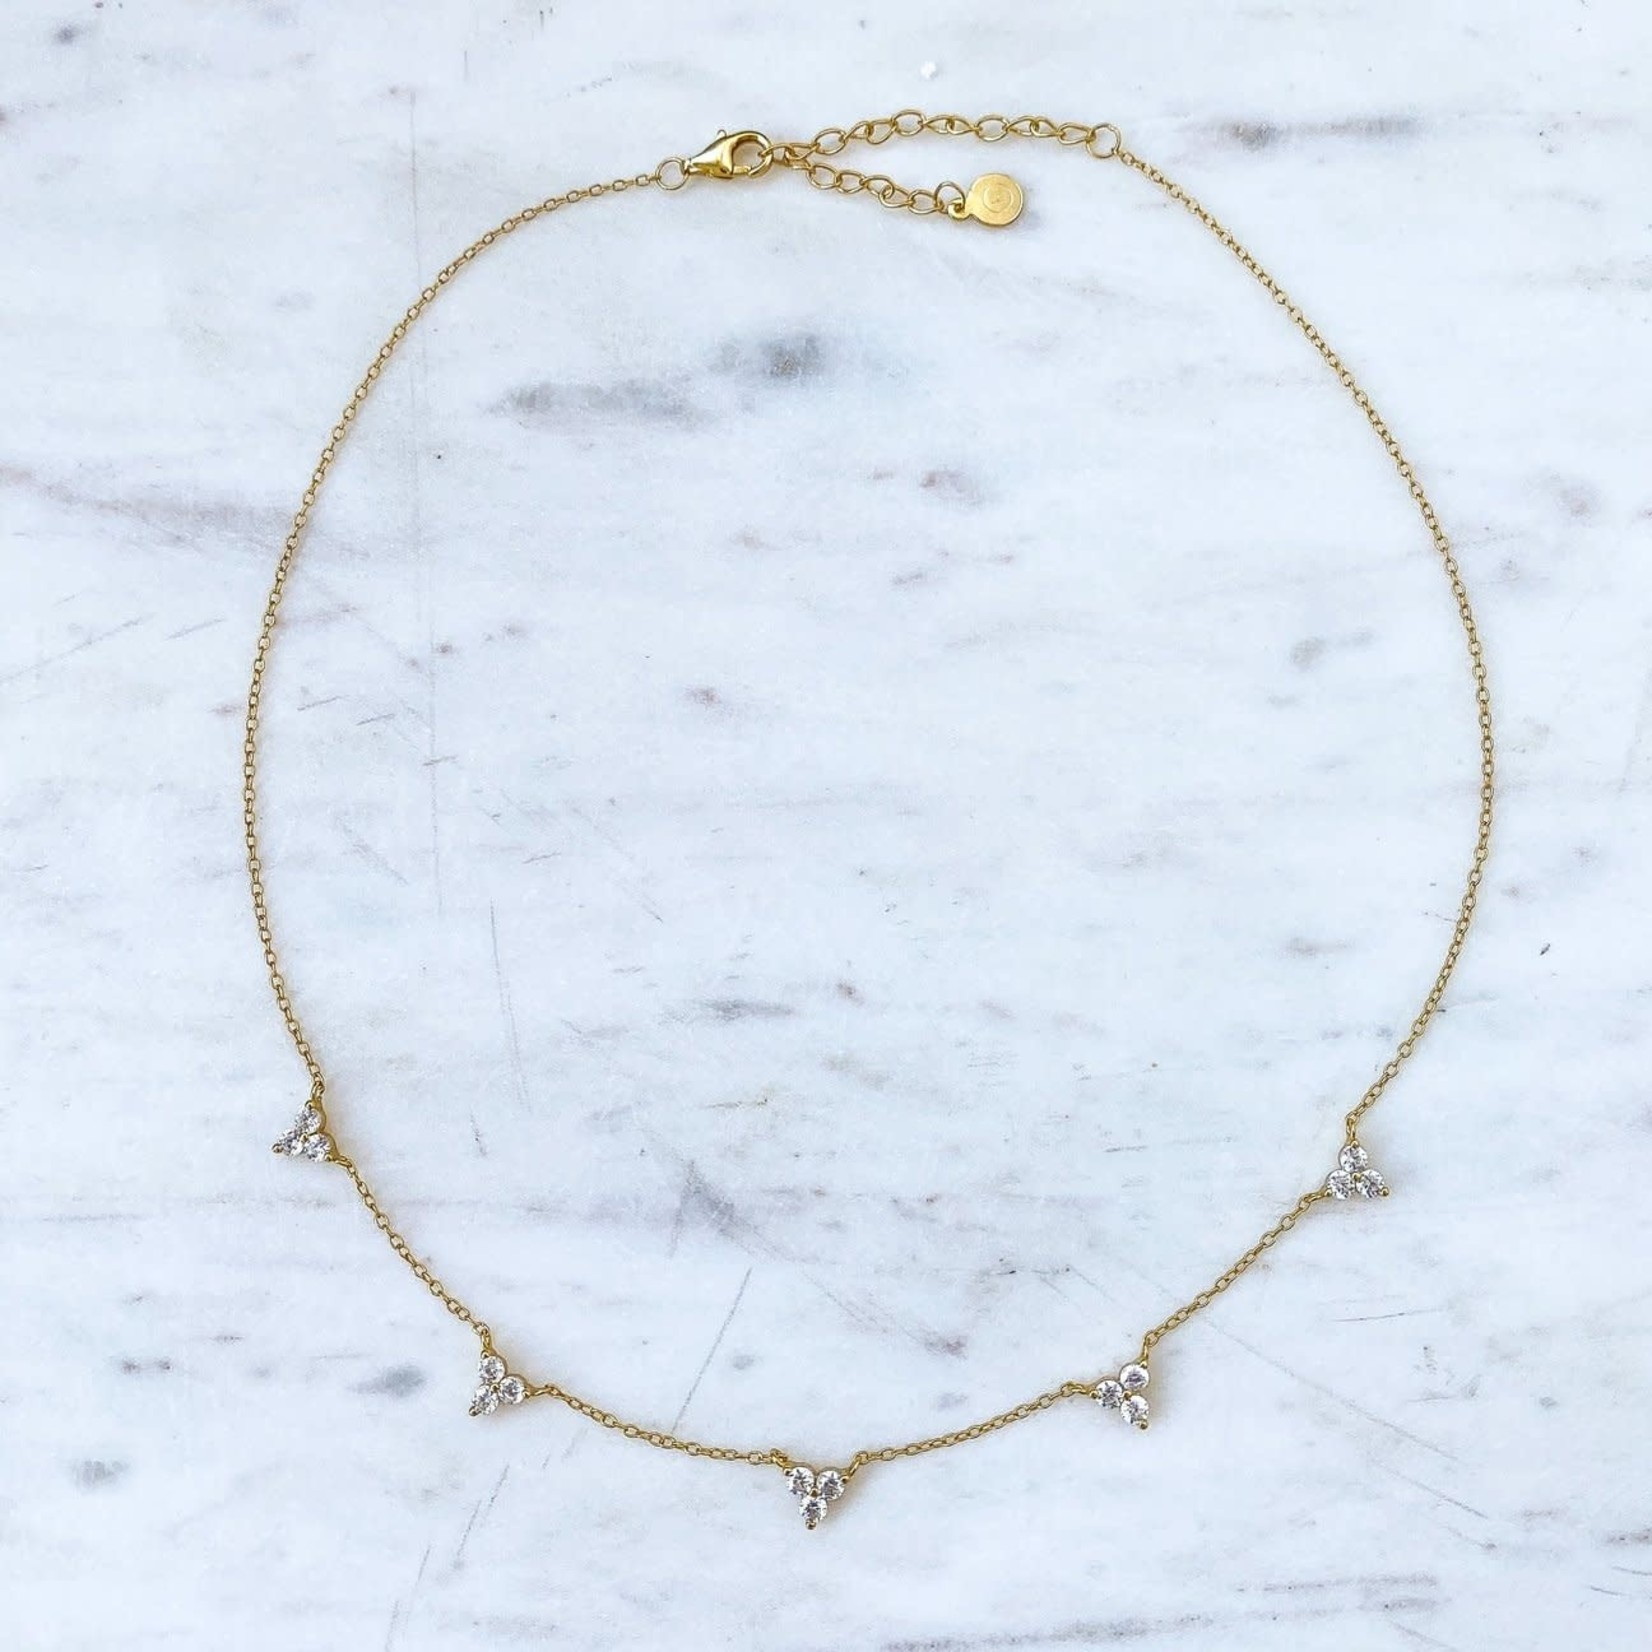 Horace Jewelry Horace collier INFINO